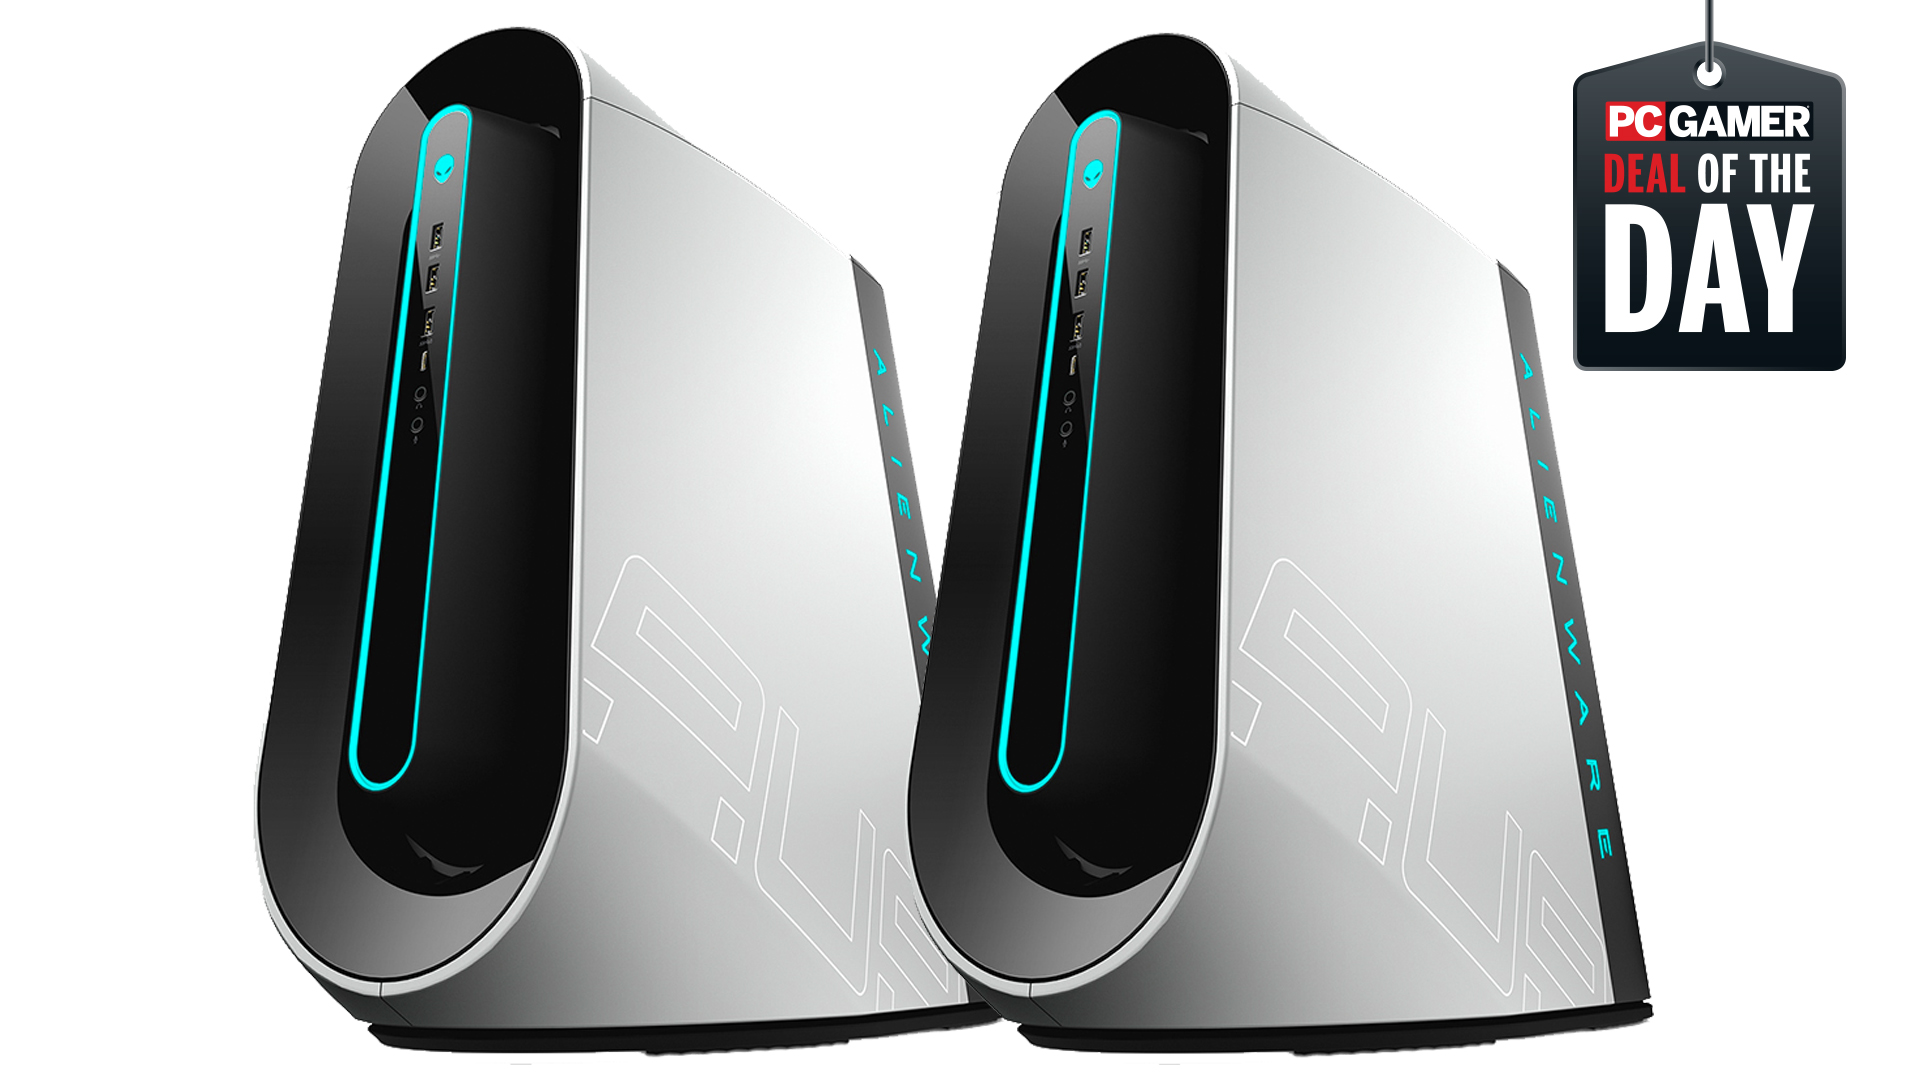 Amazing Alienware Cyber Monday Desktop Deal Get An I7 And Rtx 2080 Pc For 605 Off Today Pc Gamer